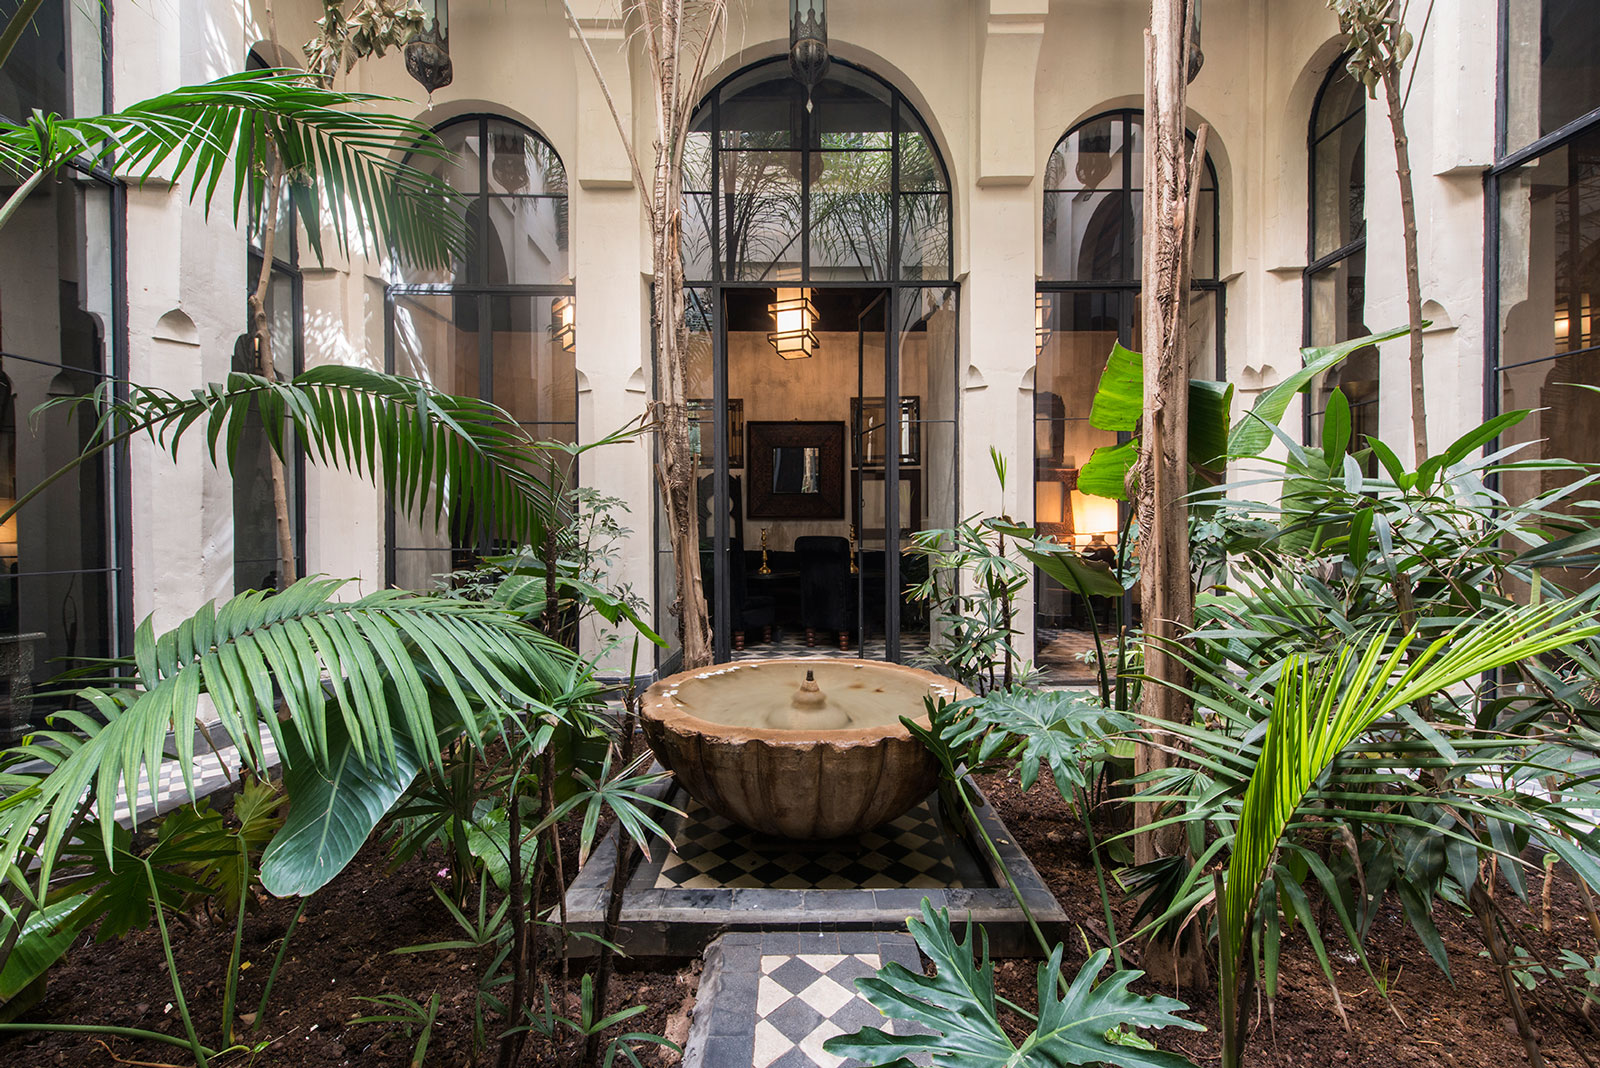 Hotel riad marrakech dar darma - Photo riad marrakech ...